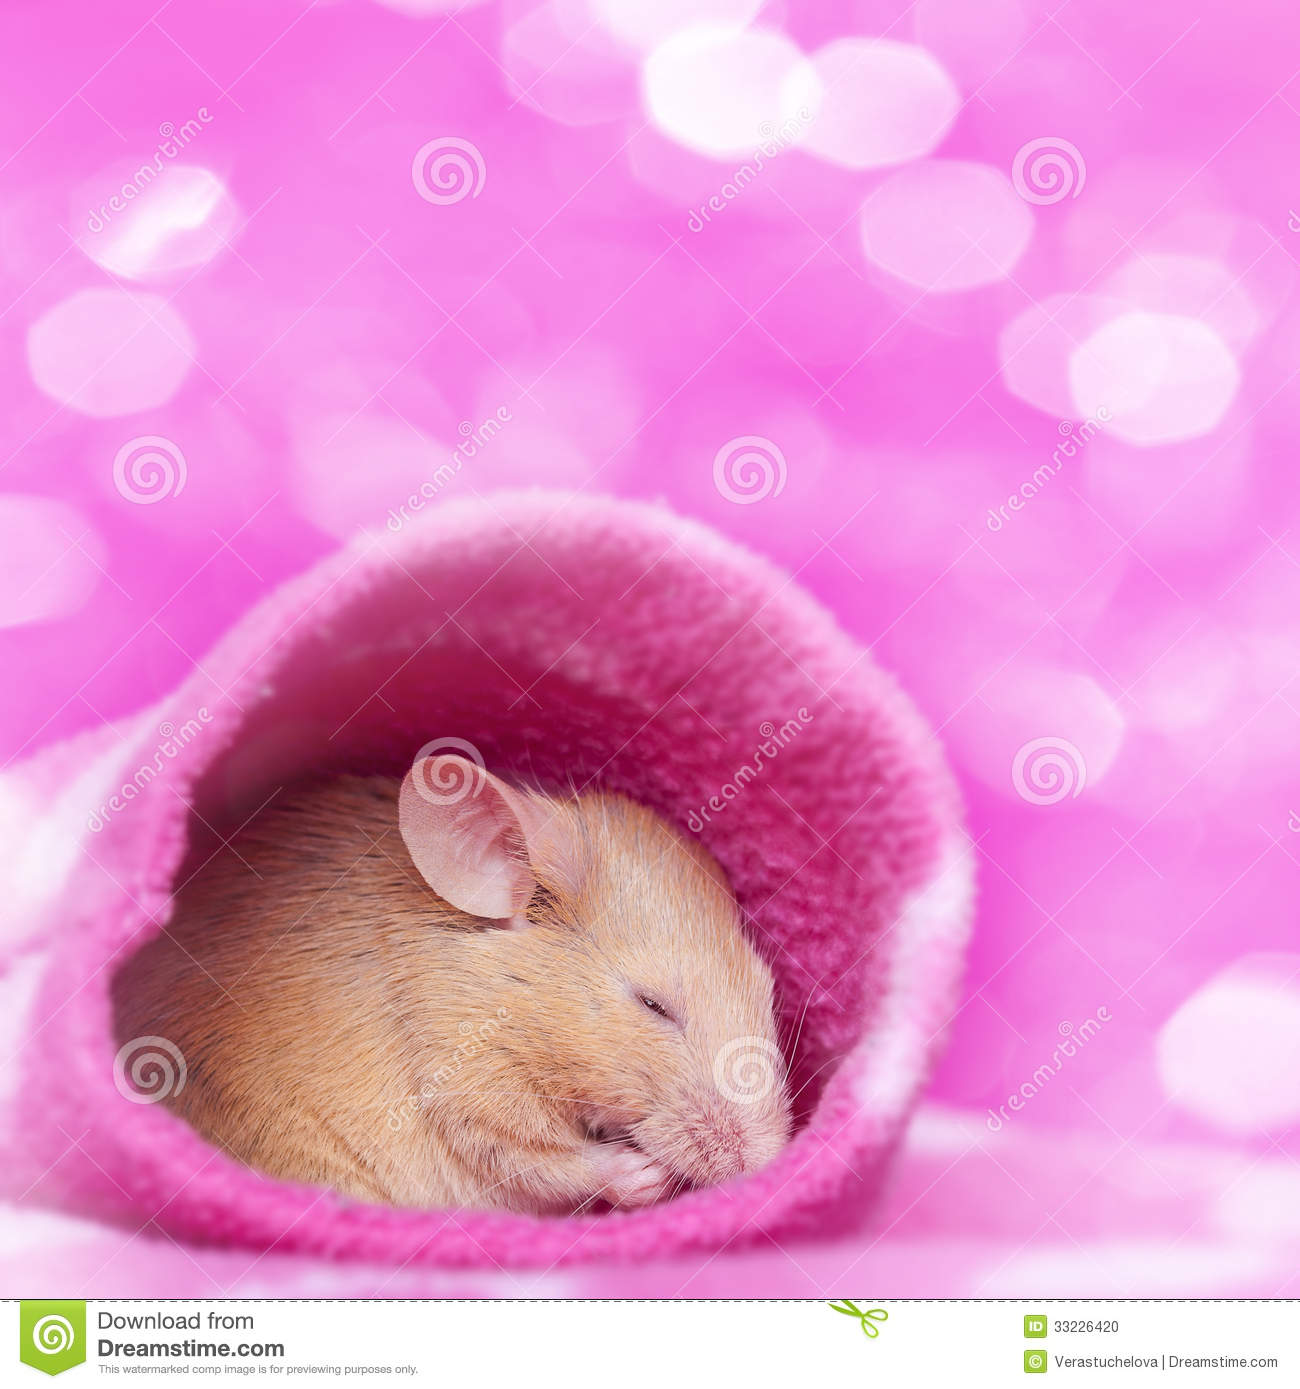 Cute Little Mouse Sleeping Stock Photo Image 33226420